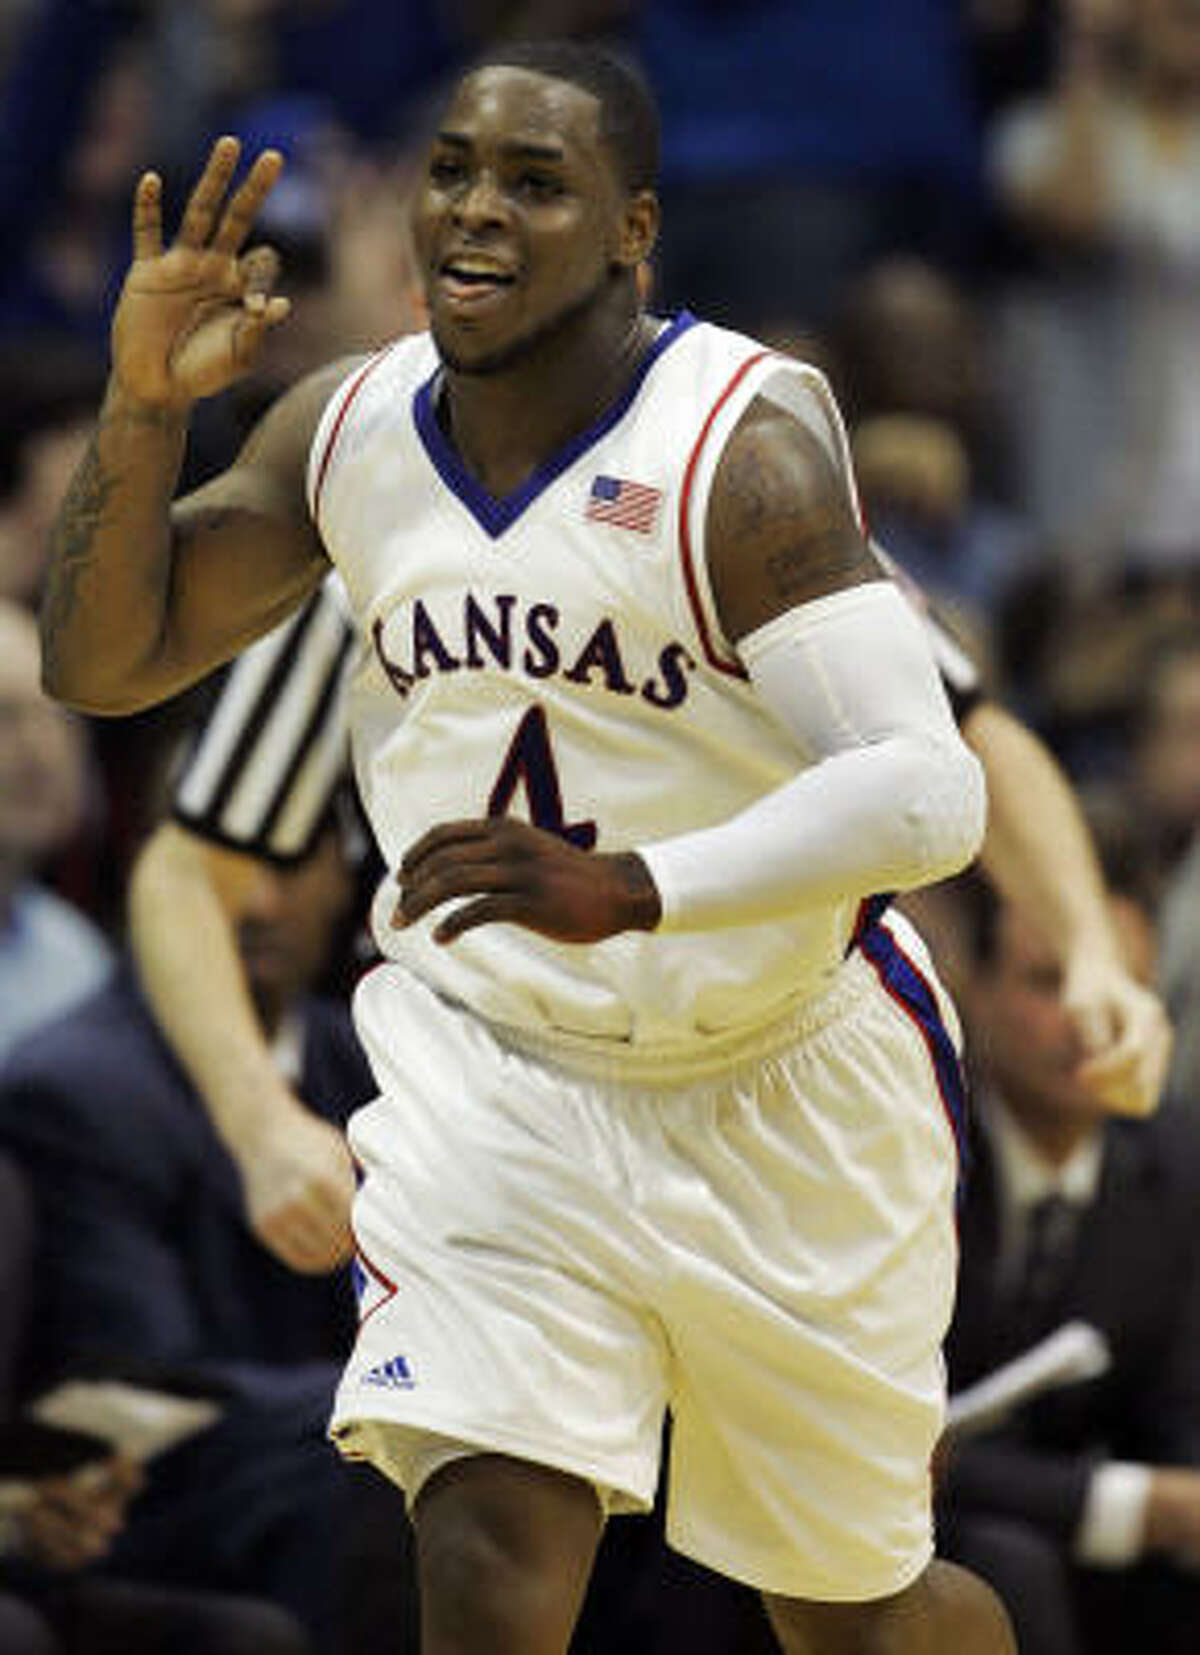 Kansas guard Sherron Collins (4) celebrates a 3 point basket during the second half of an NCAA college basketball game against Missouri in Lawrence, Kan., Sunday, March 1, 2009. Collins scored 25 points to lead Kansas to a 90-65 win over Missouri.